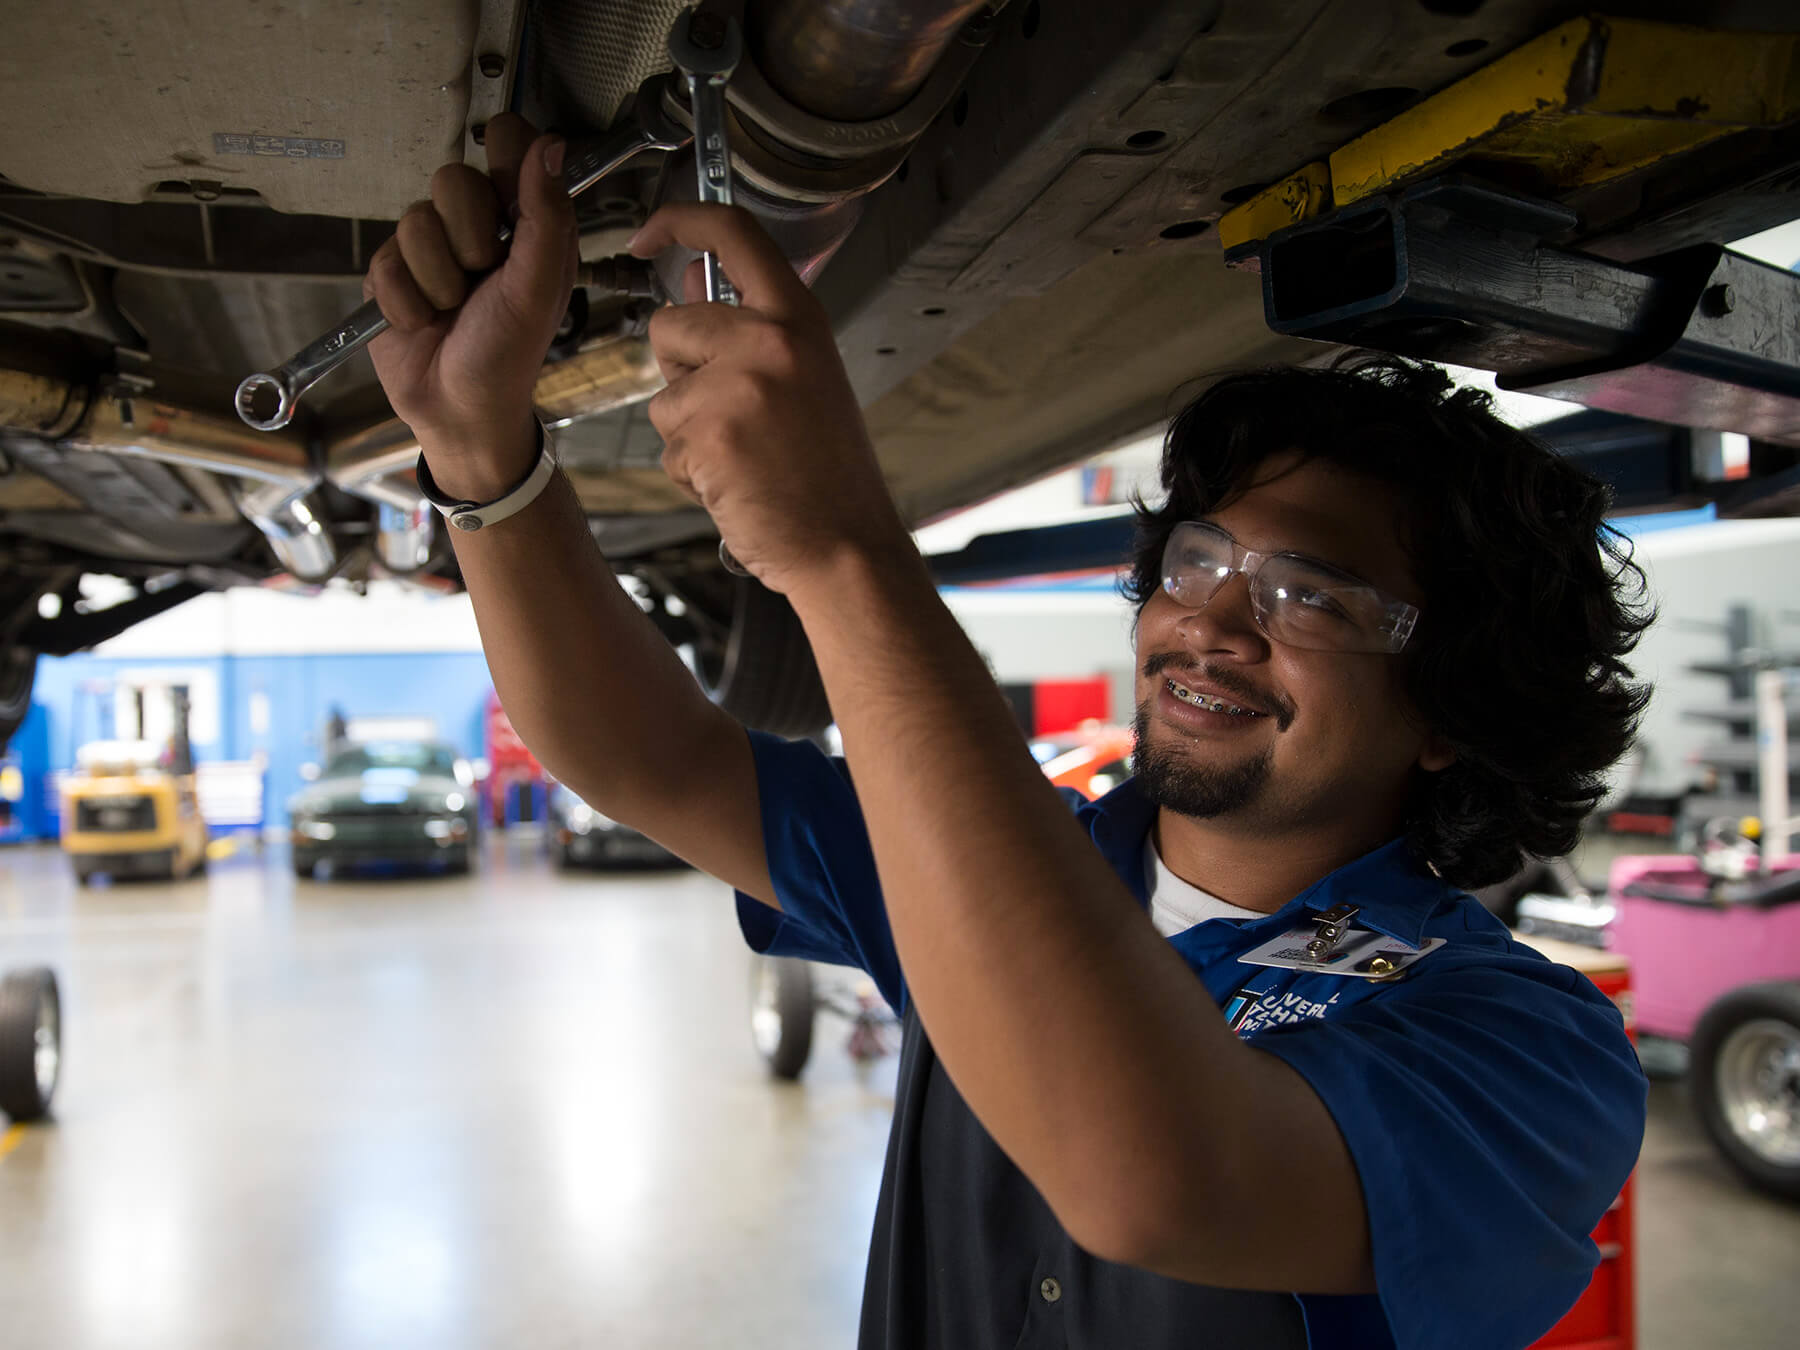 UTI student smiling while working underneath a car